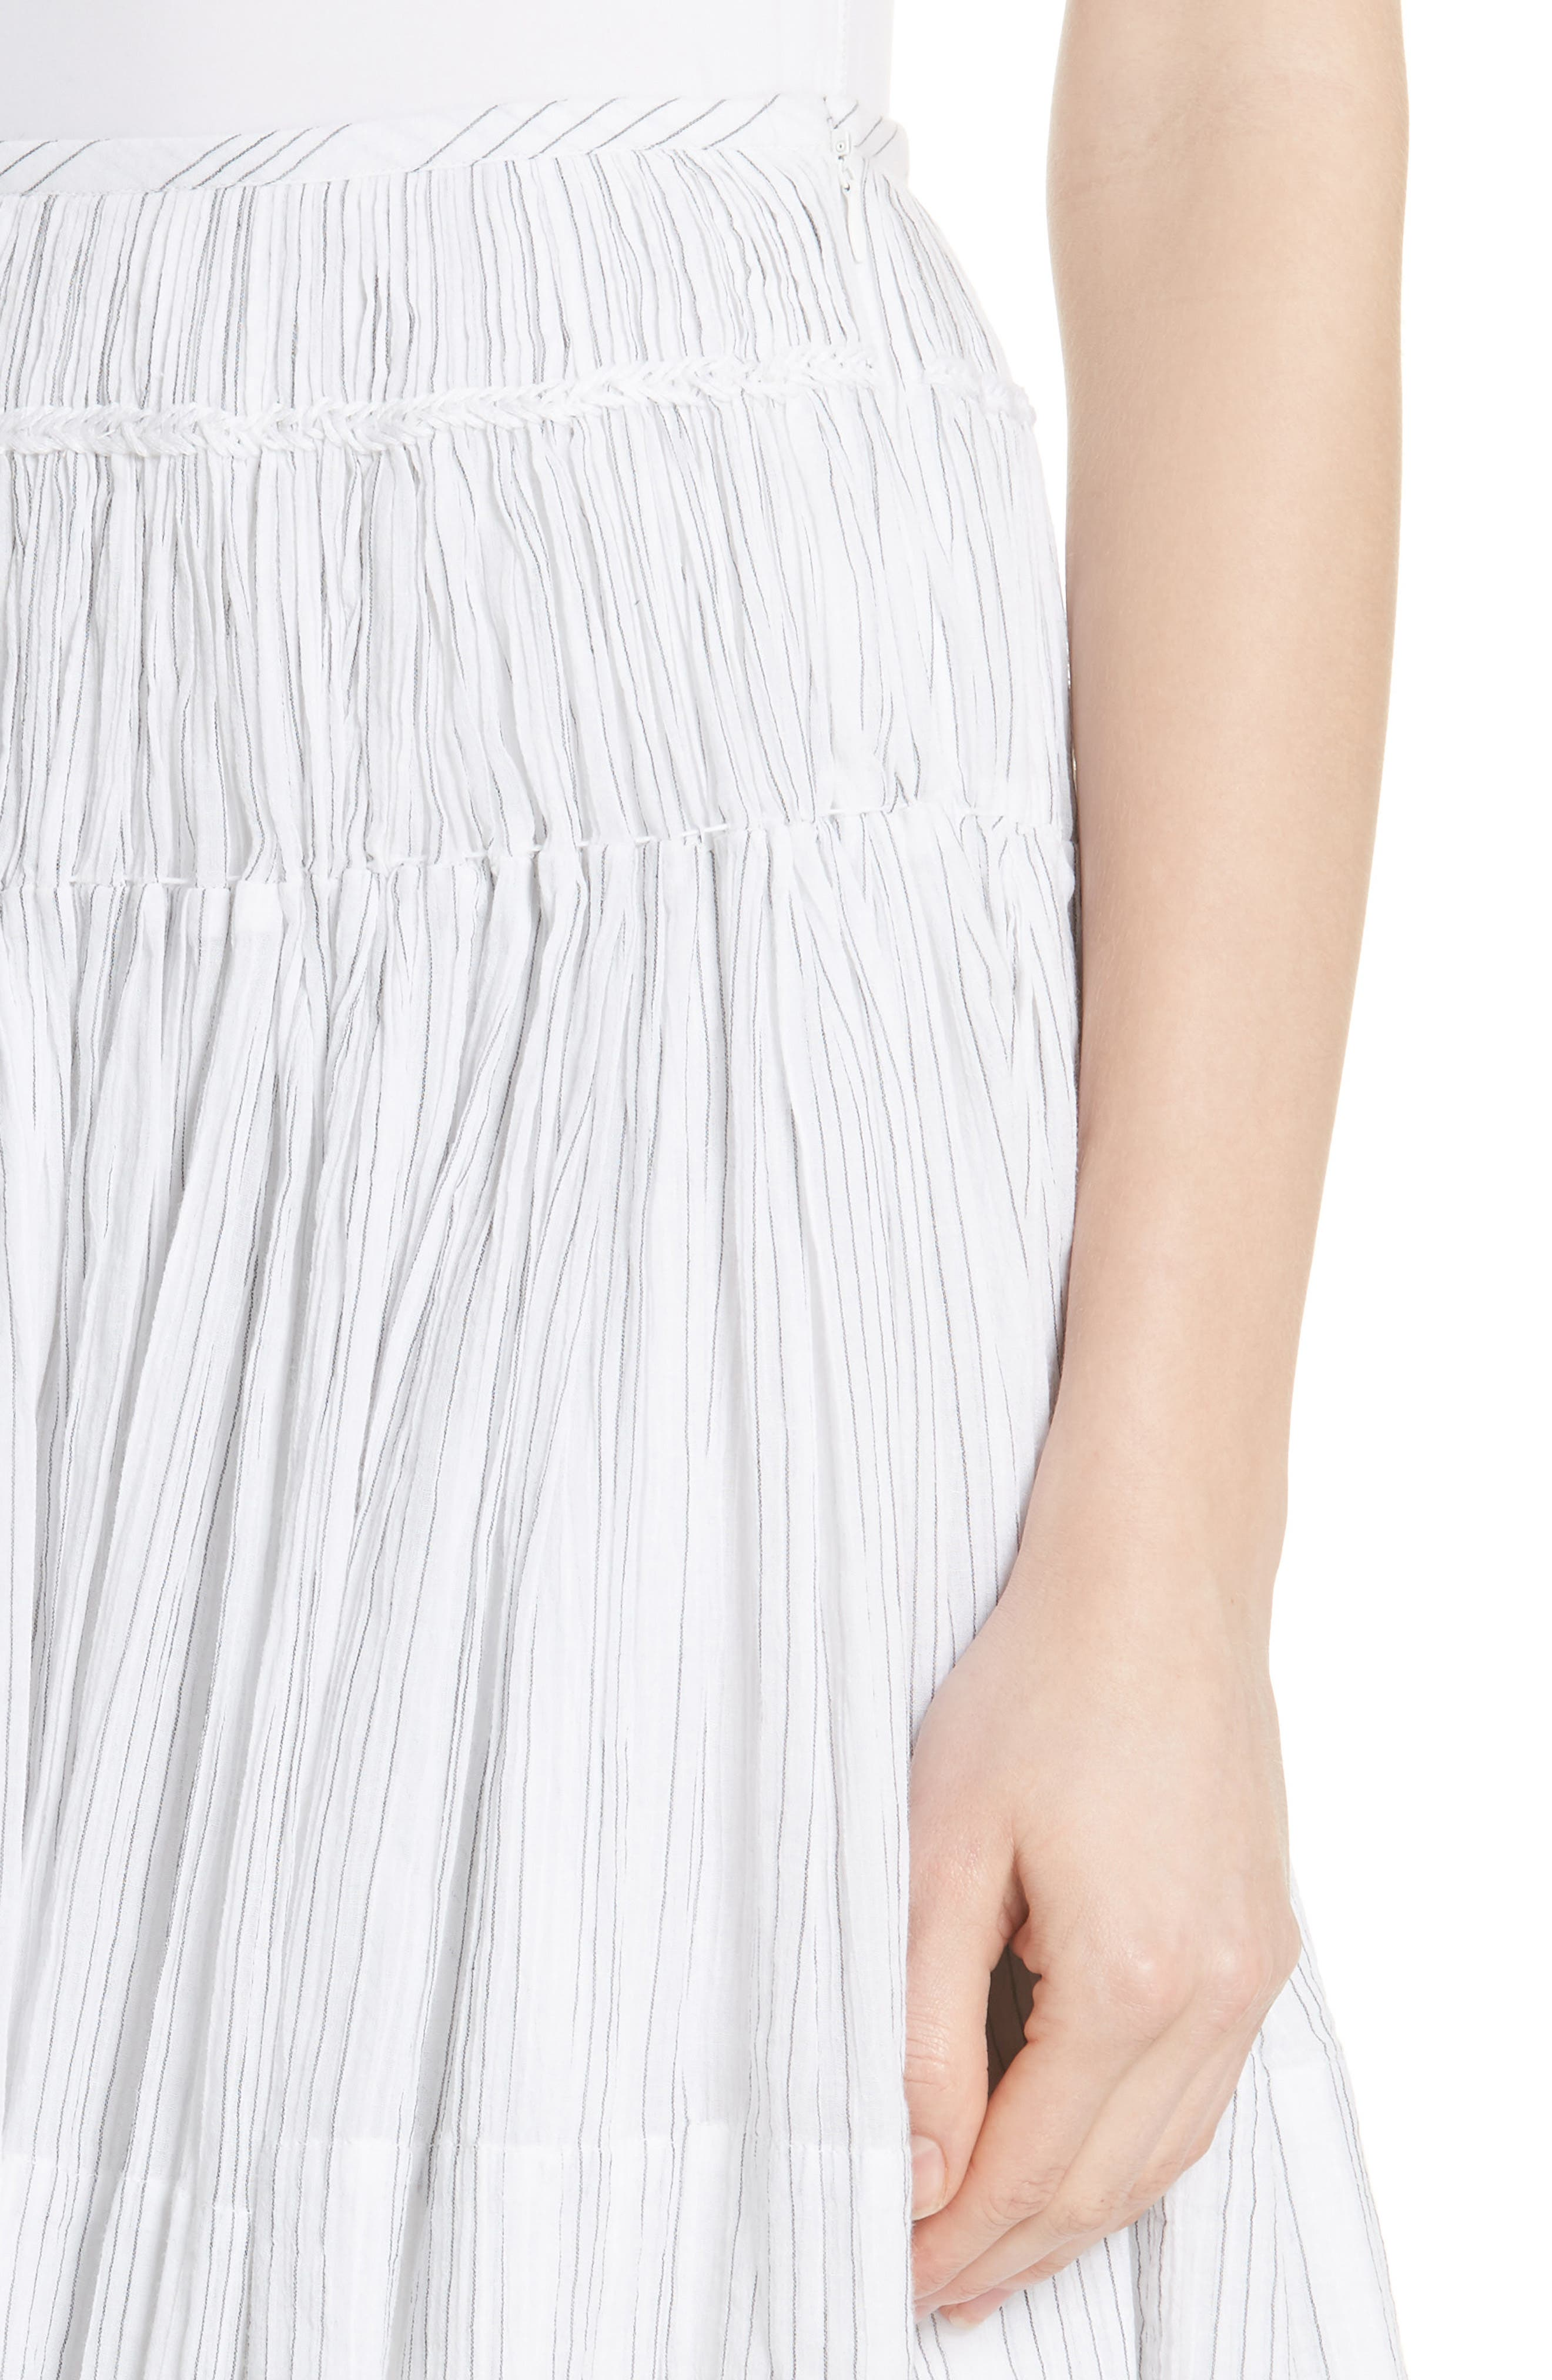 Variegated Stripe Pleat Skirt,                             Alternate thumbnail 4, color,                             Optic White/ Black